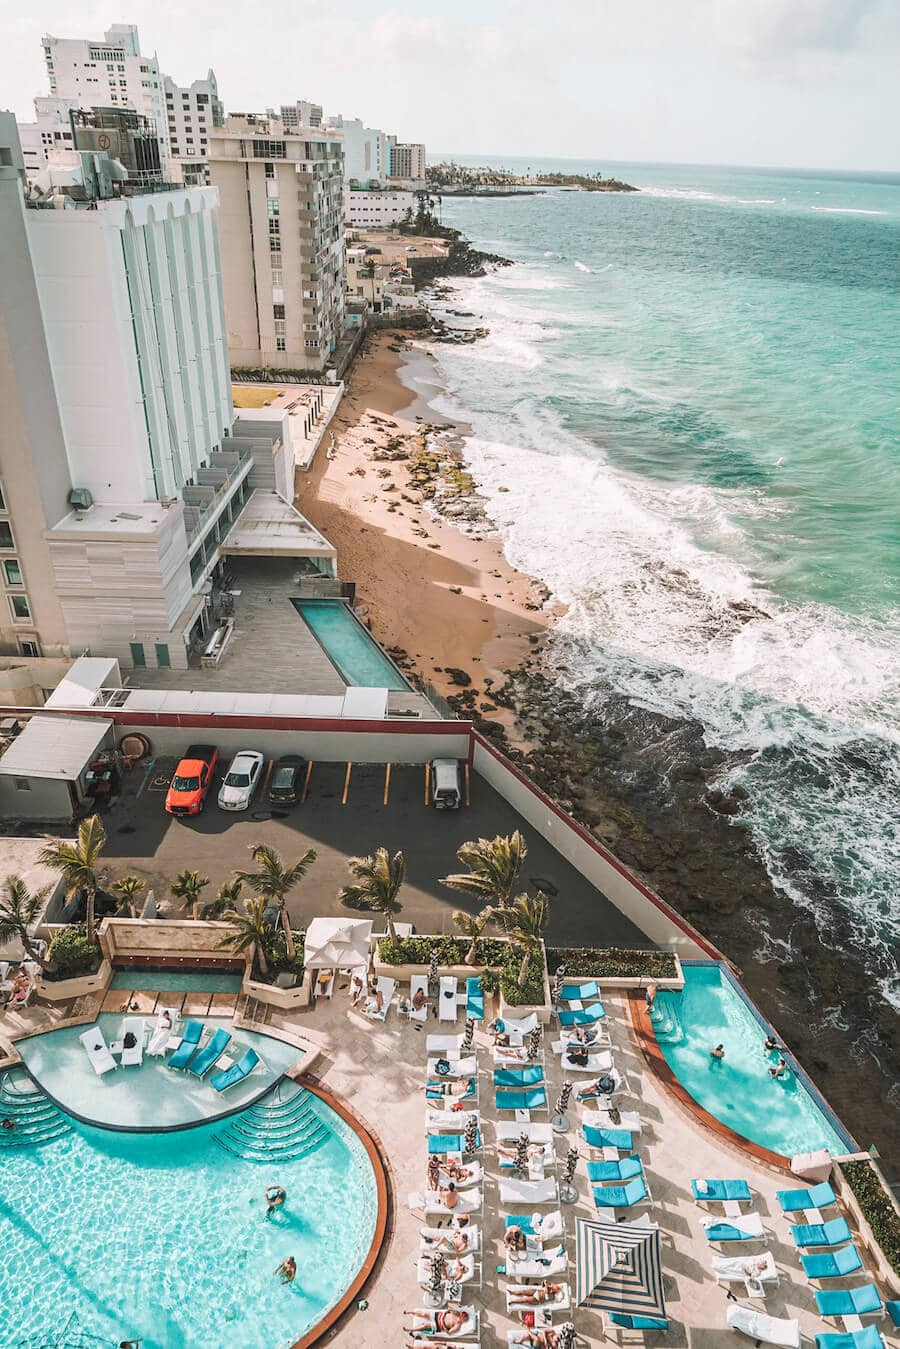 Views from the Condado Vanderbilt in San Juan, Puerto Rico